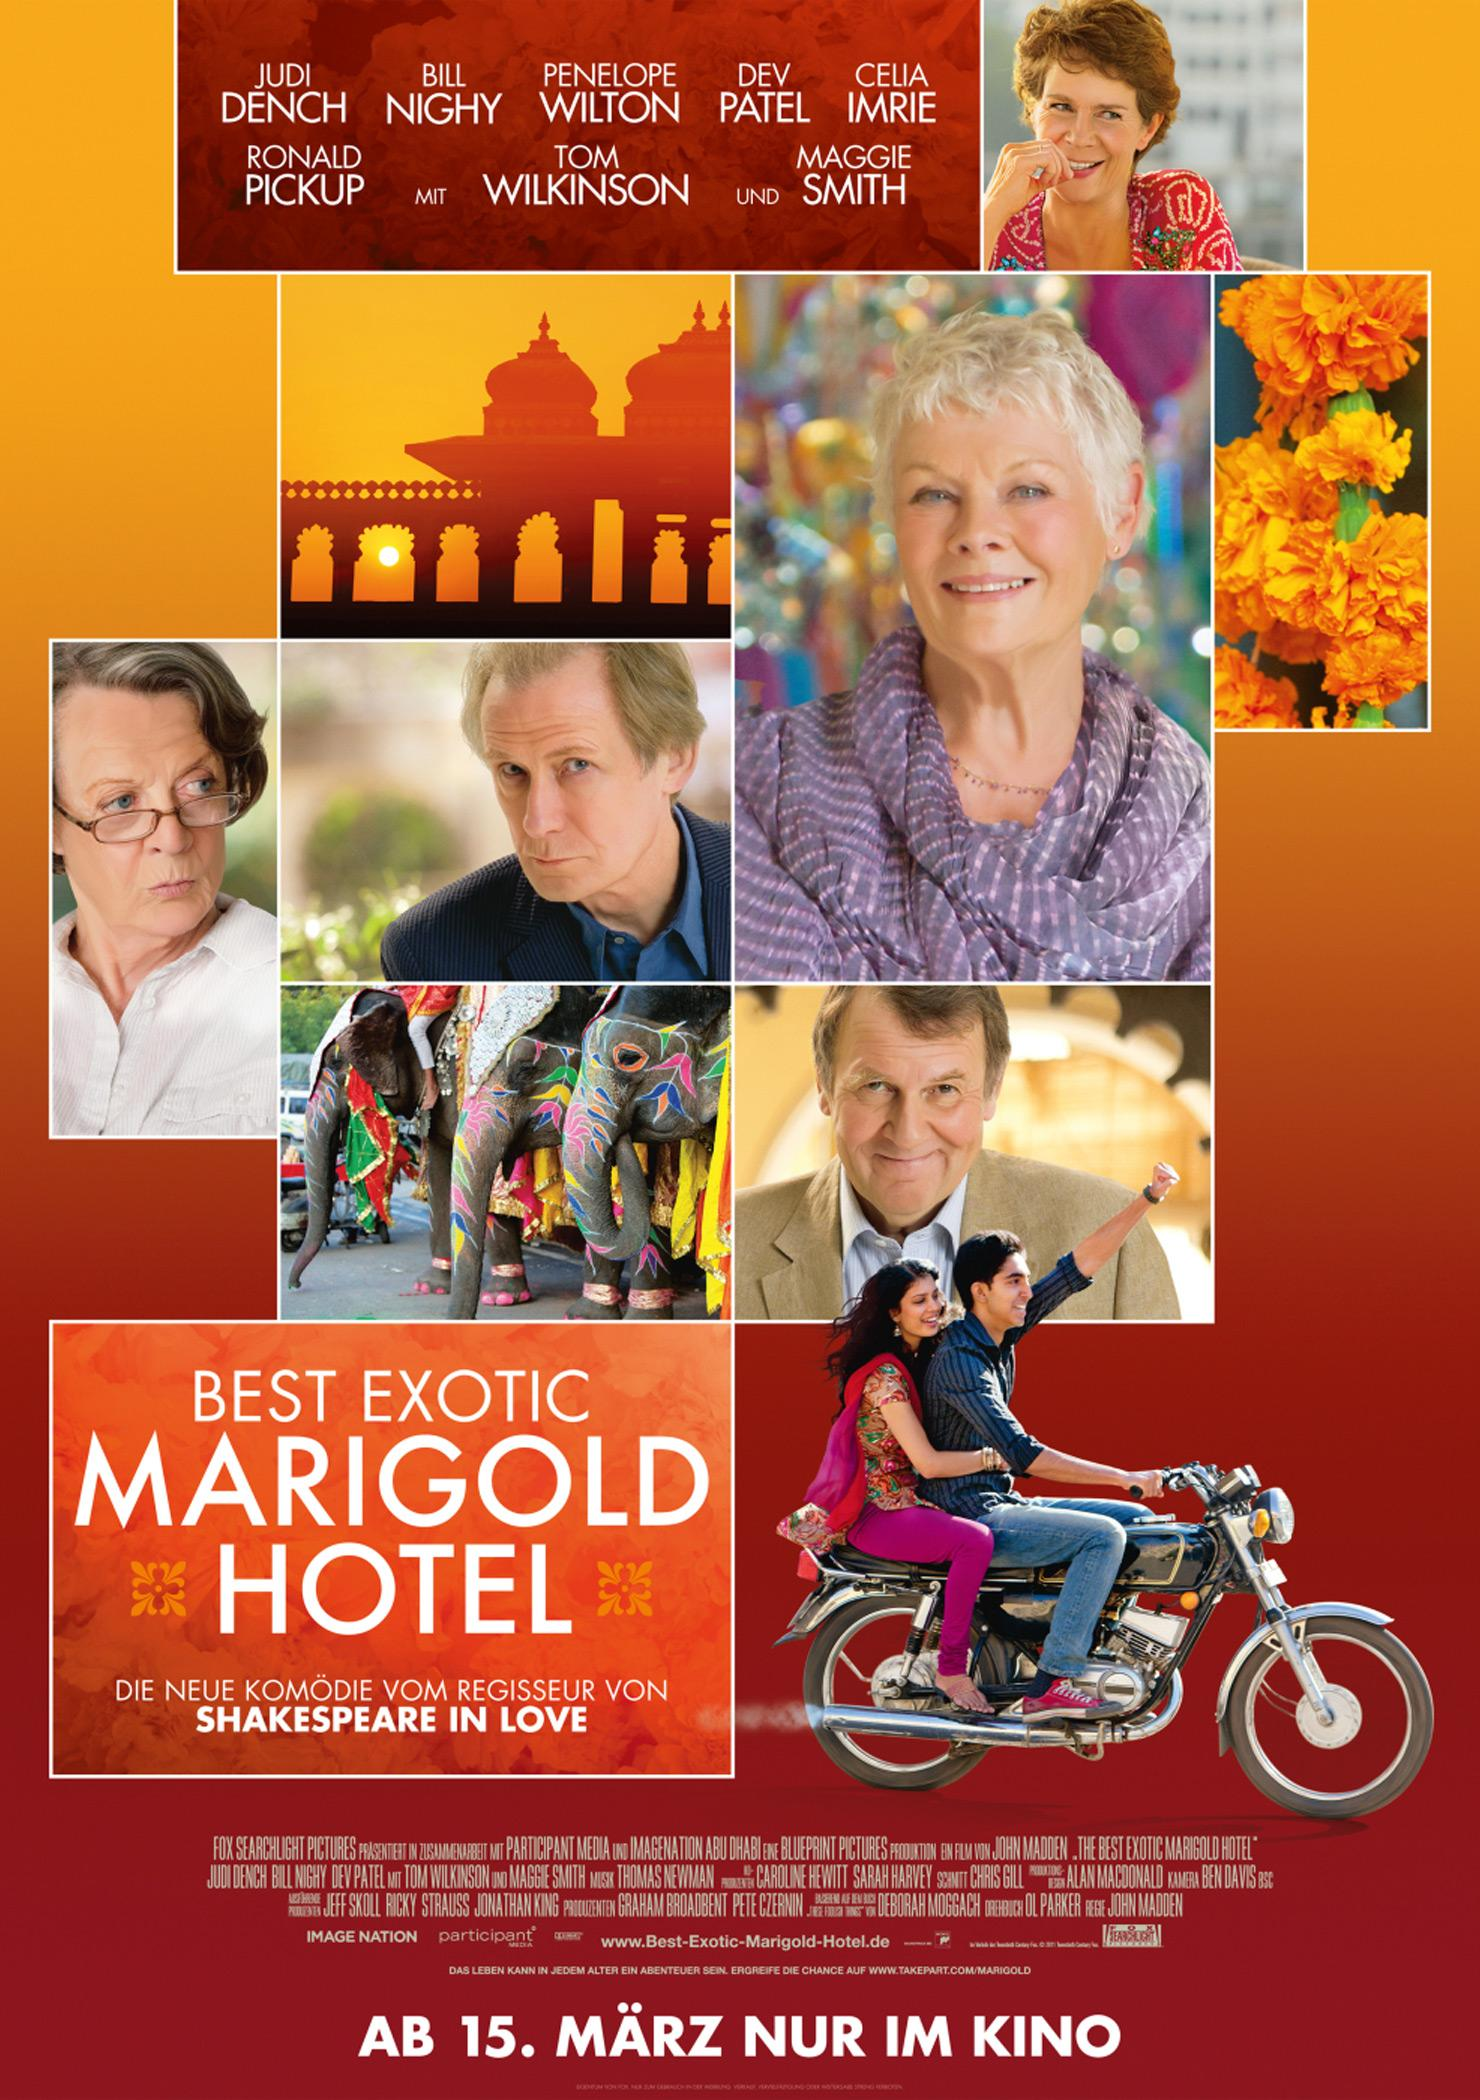 Best Exotic Marigold Hotel (Poster)